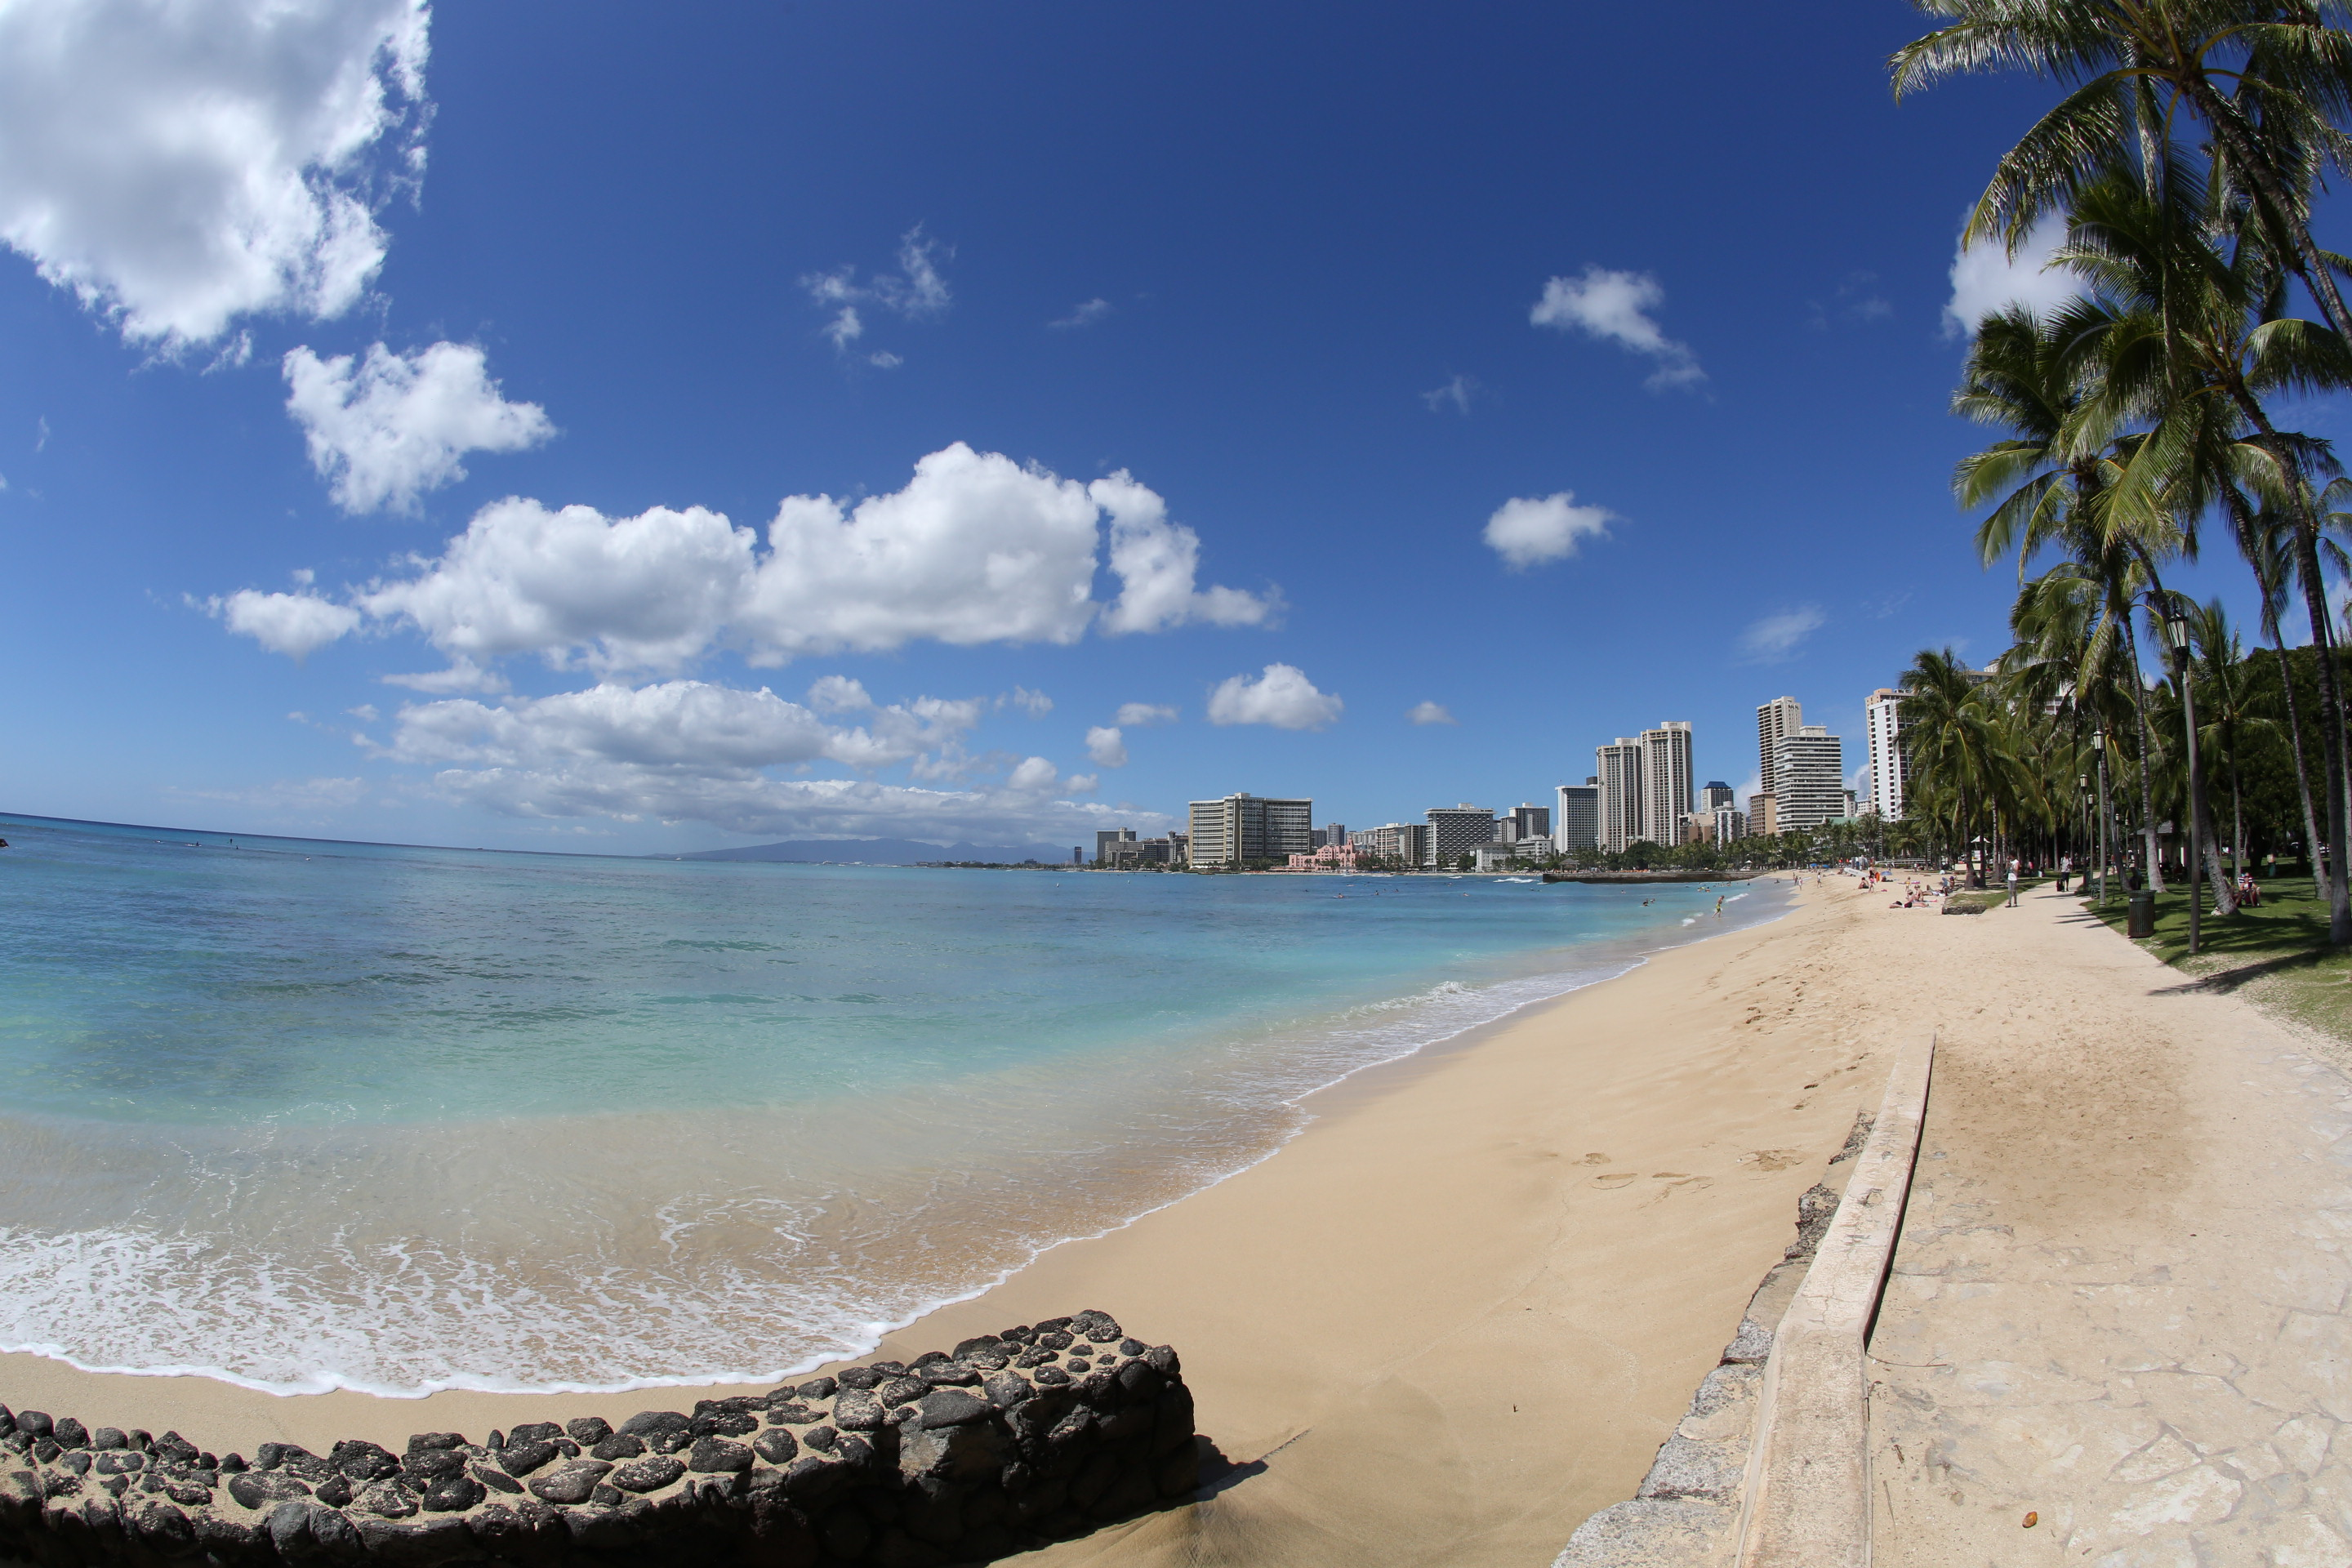 The world-famous surfing spot, Waikiki Beach, Oahu